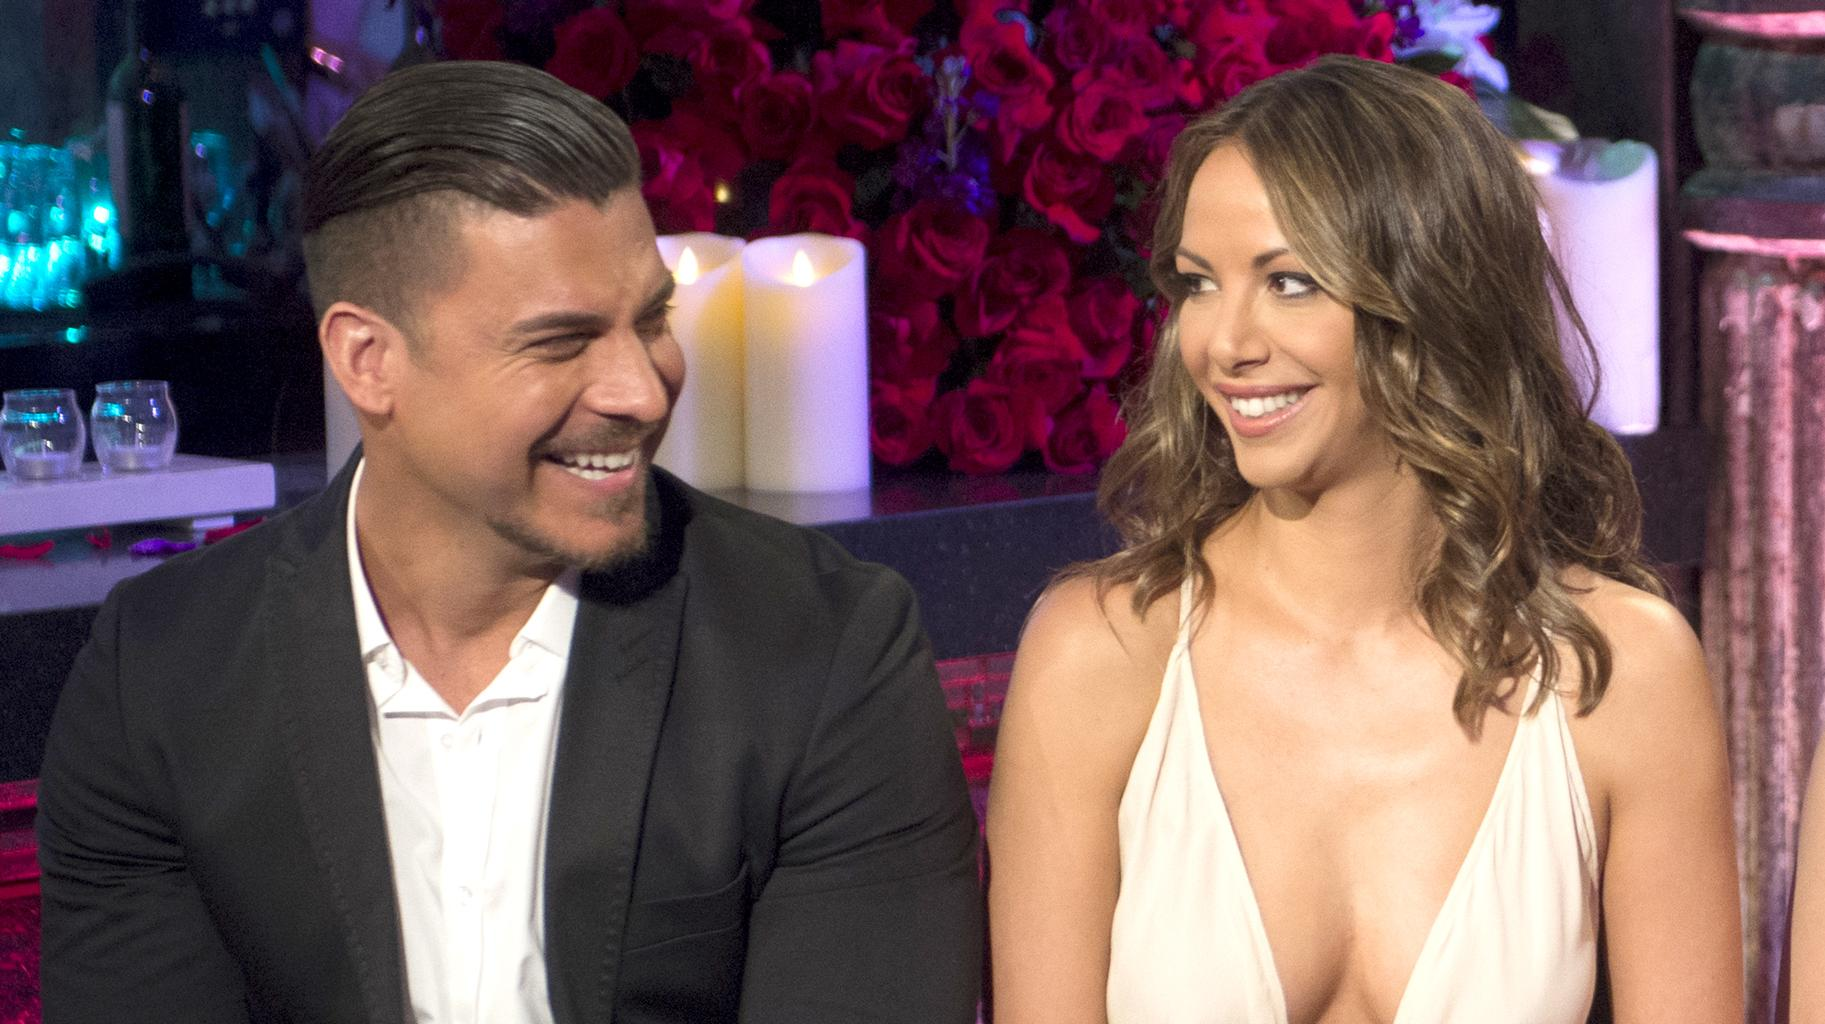 Jax Taylor And Kristen Doute Reconcile And Pose Together After Previously Blocking Her On Instagram - Check Out The Sweet Post